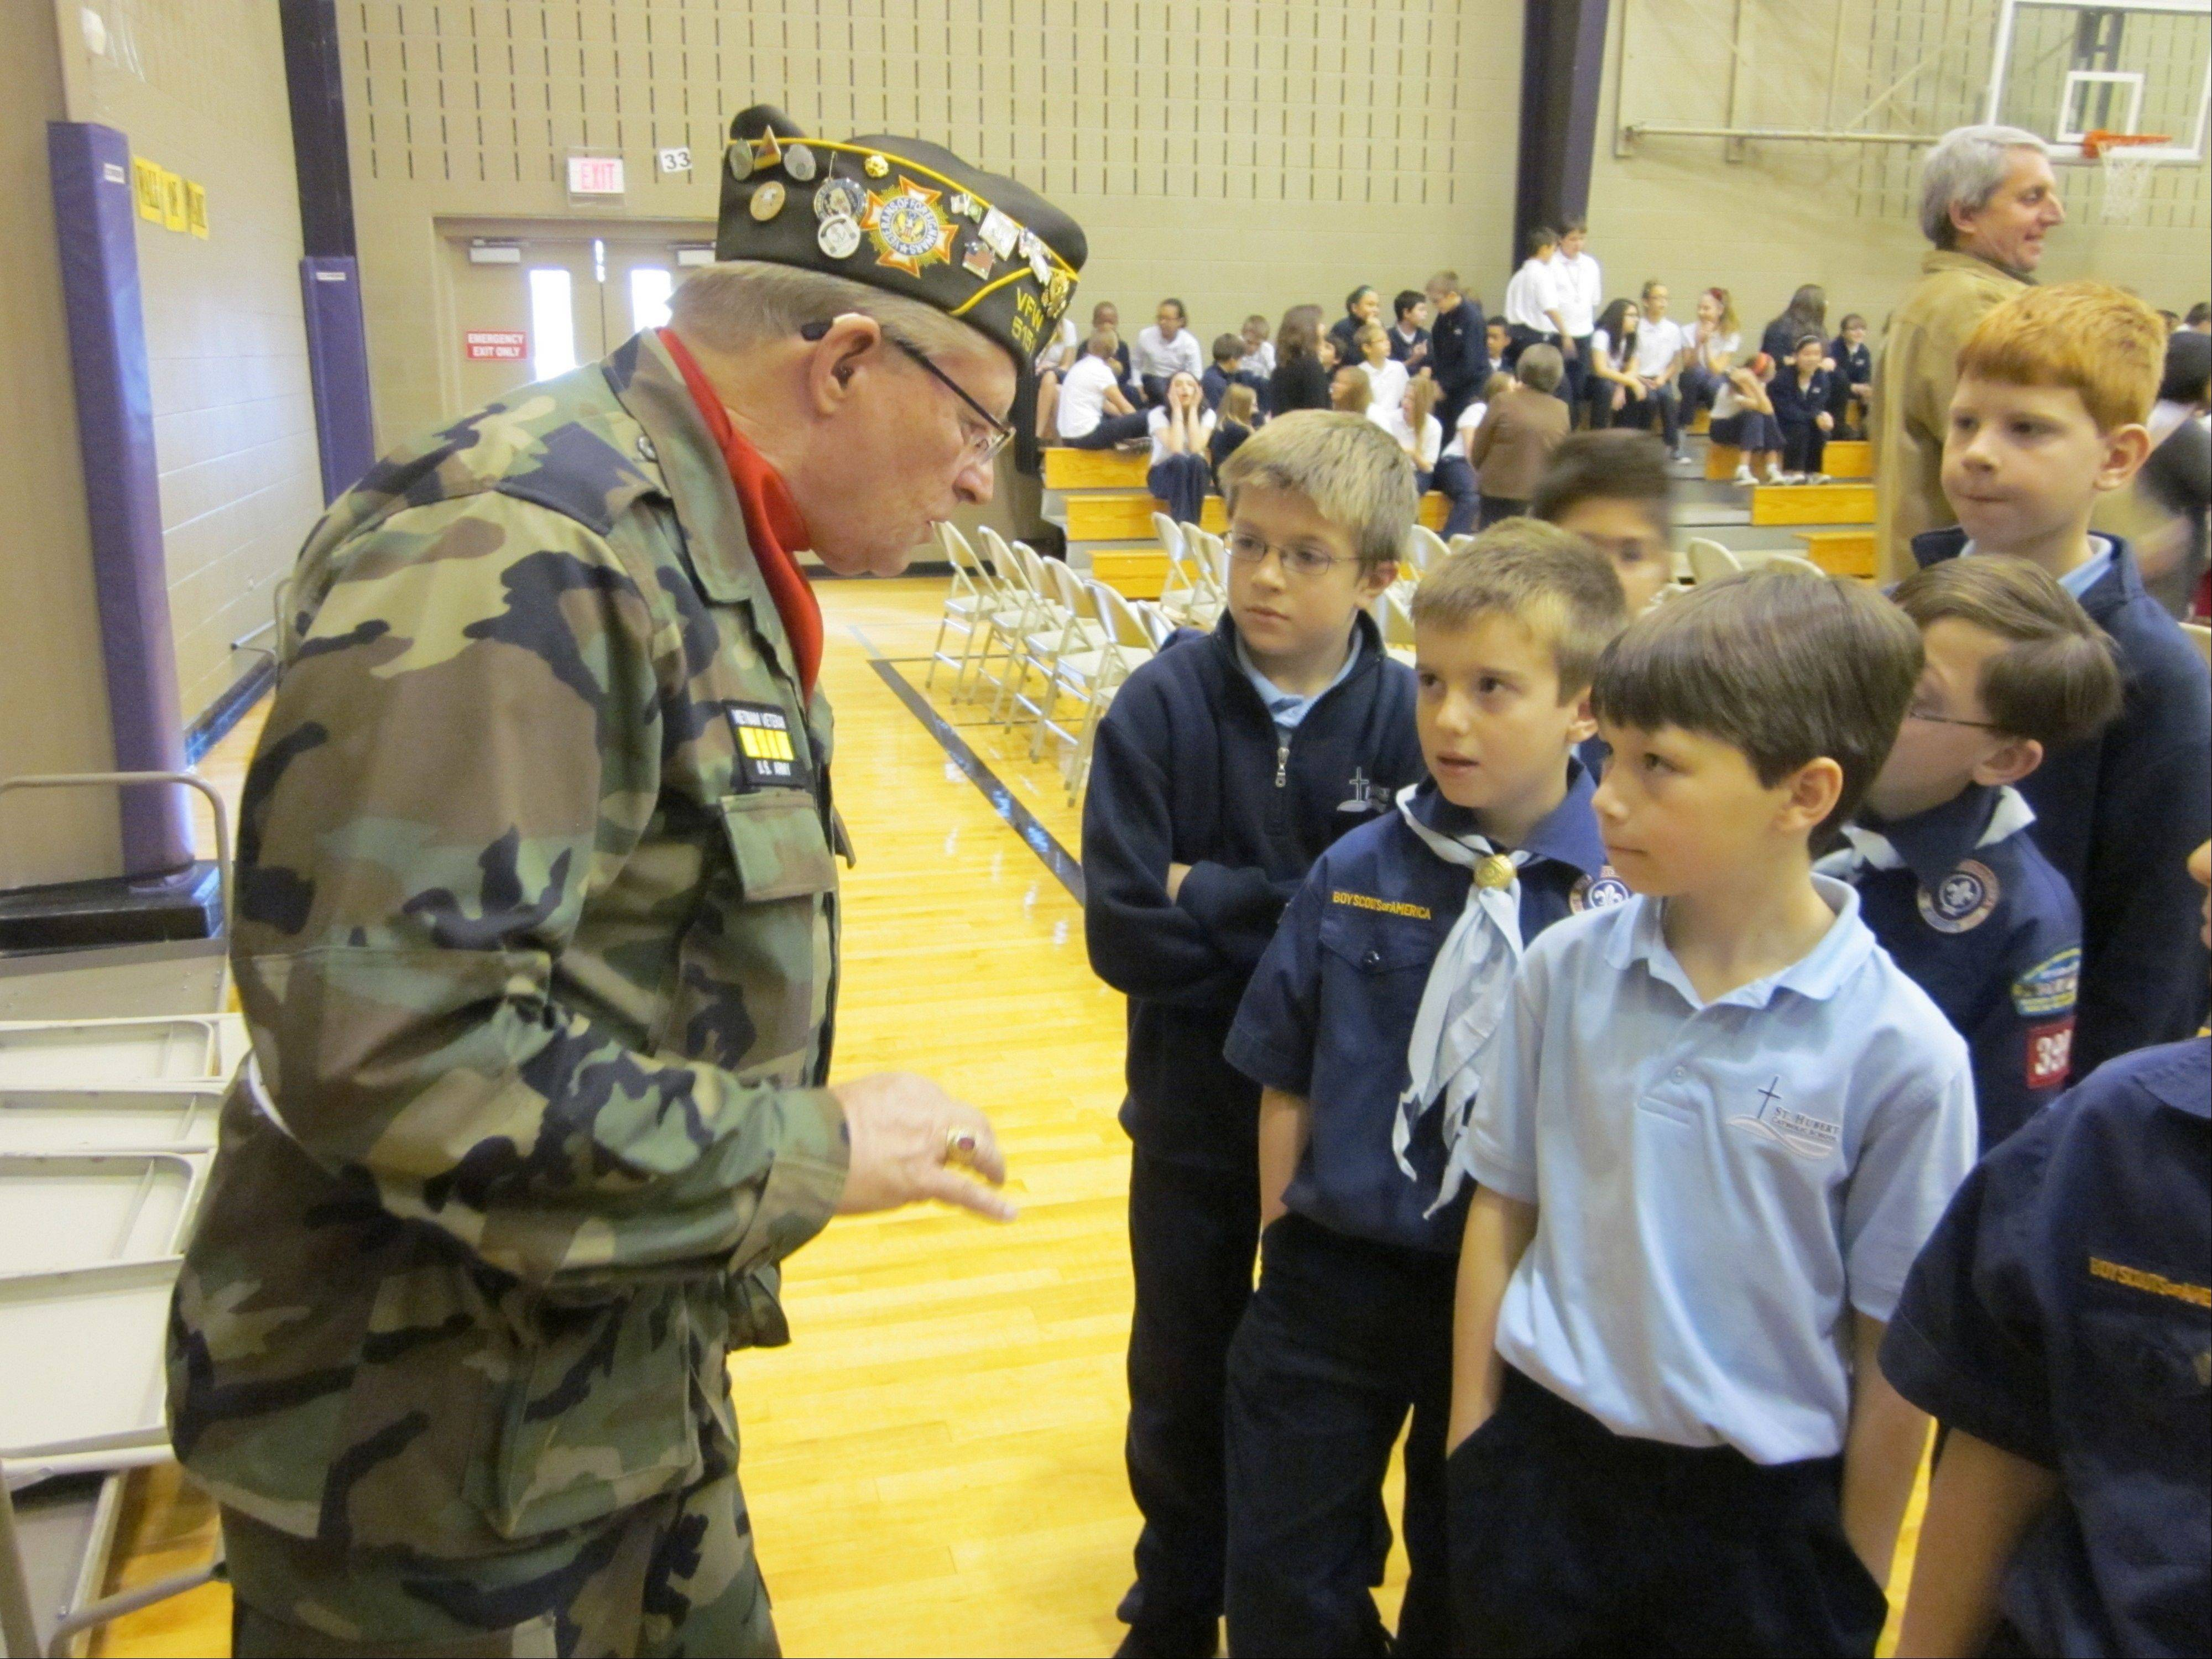 U.S. Army veteran Phil Jelen, who served during the Vietnam War and is now a service officer for VFW Post 5151, talks to students at Saint Hubert Catholic School in Hoffman Estates during a Veterans Day ceremony Friday.